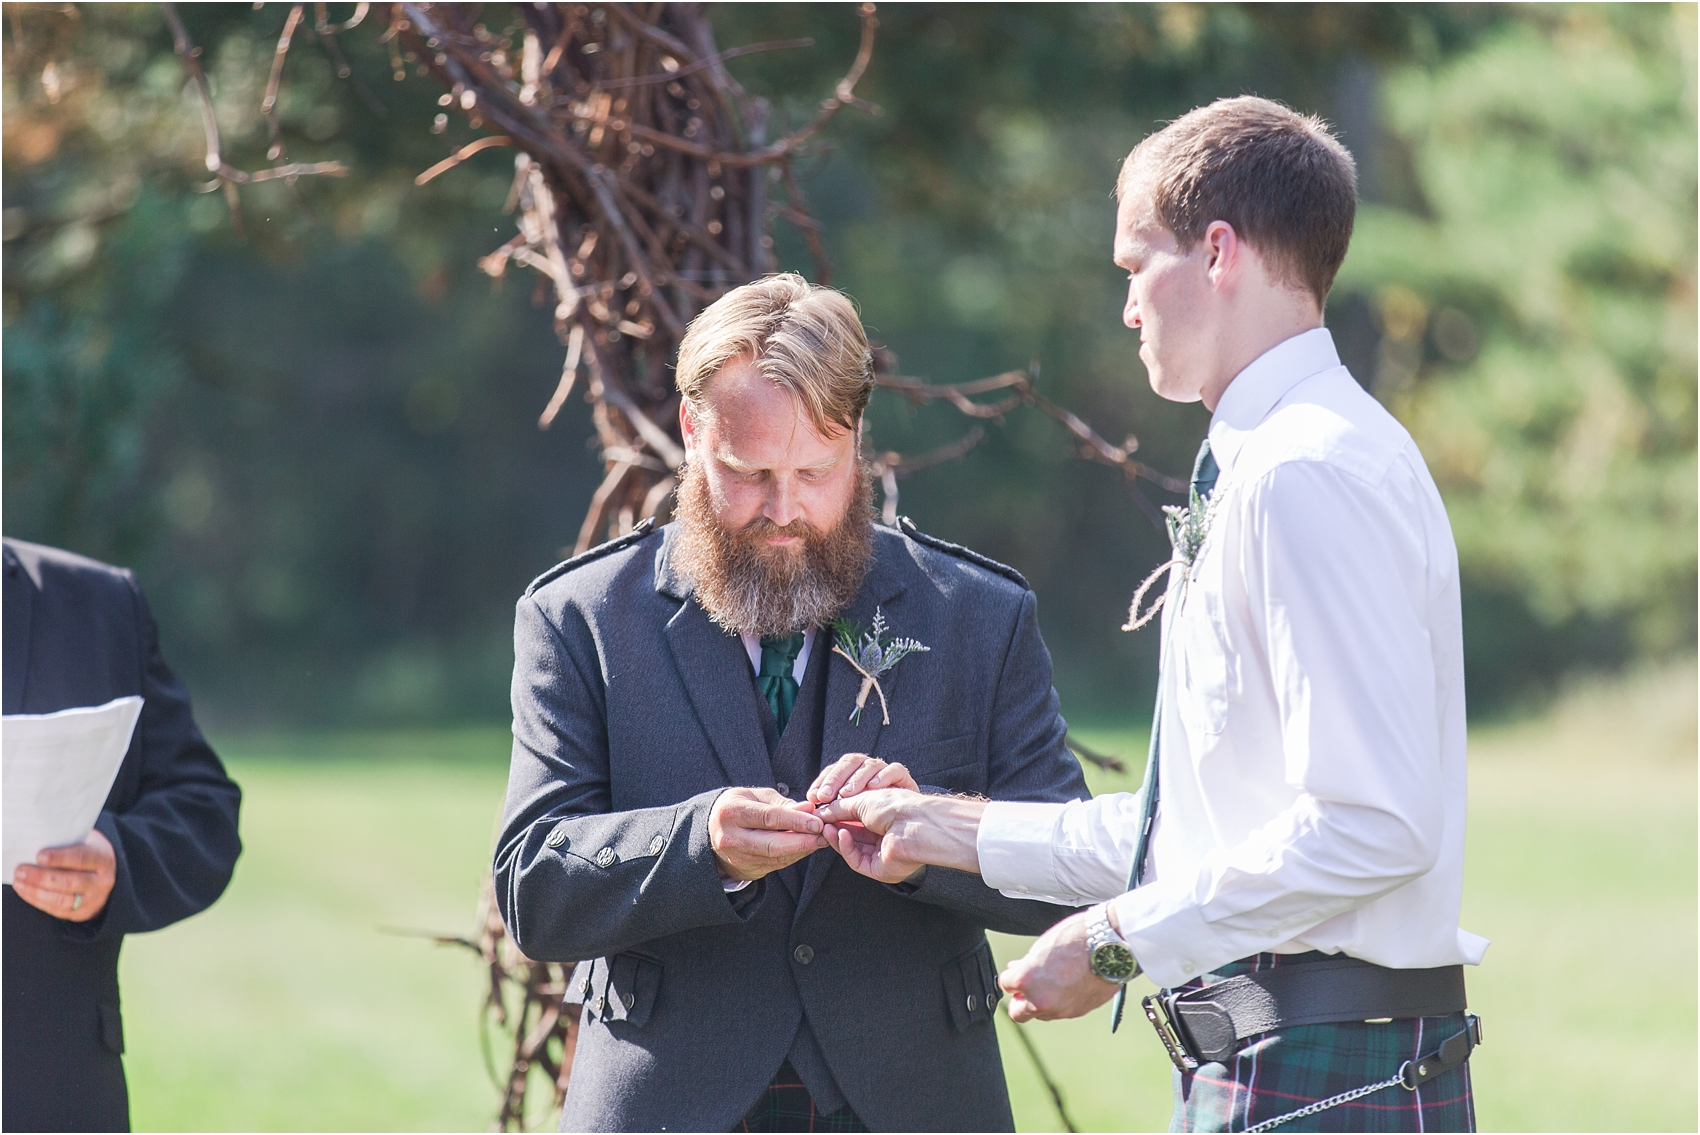 scottish-inspired-wedding-photos-in-the-country-in-port-sanilac-michigan-by-courtney-carolyn-photography_0023.jpg